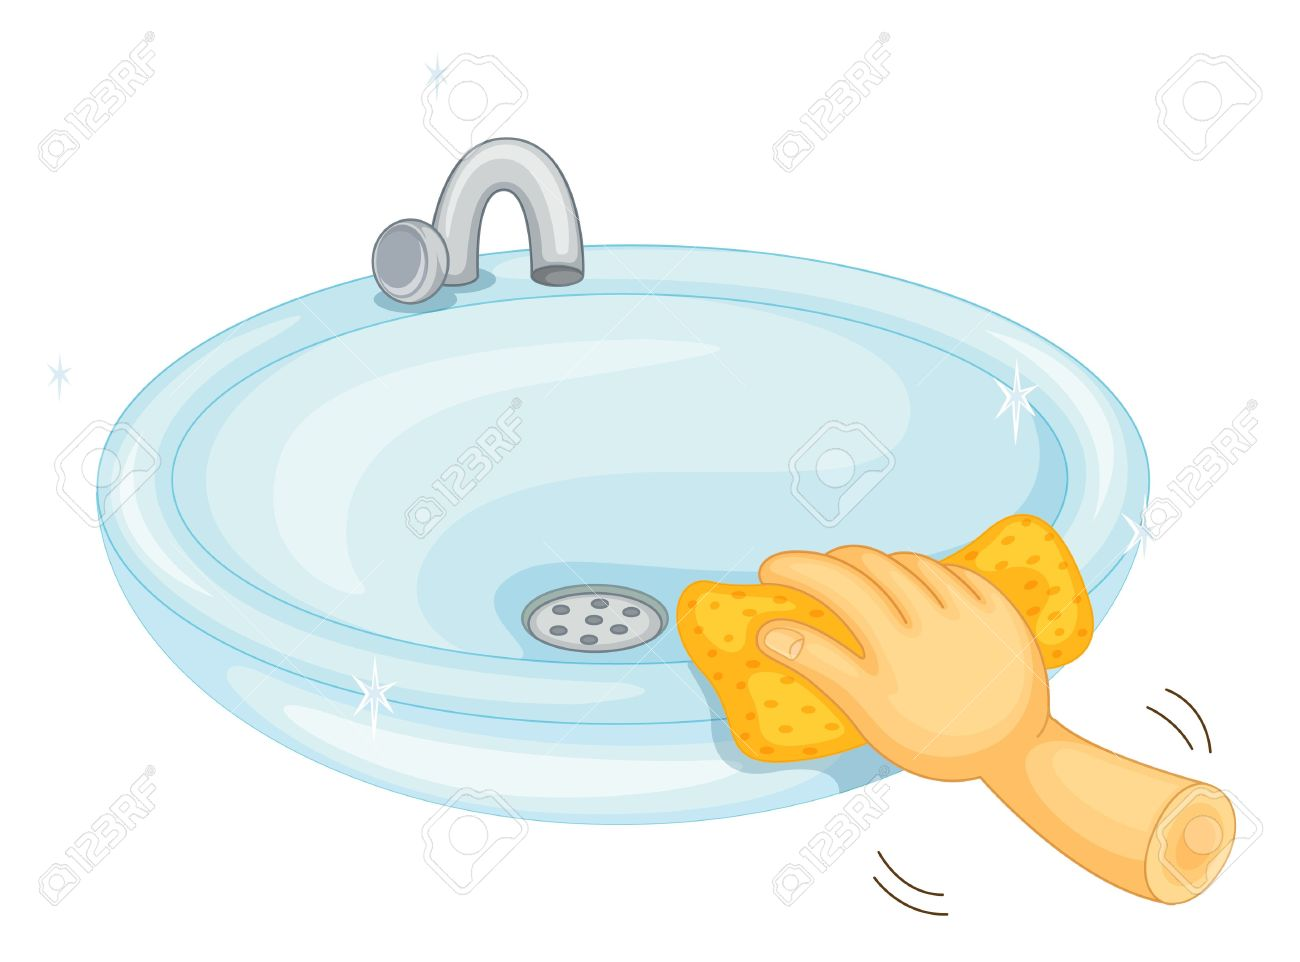 Sinks Clipart | Free download best Sinks Clipart on ClipArtMag.com for bathroom sink clipart  557ylc